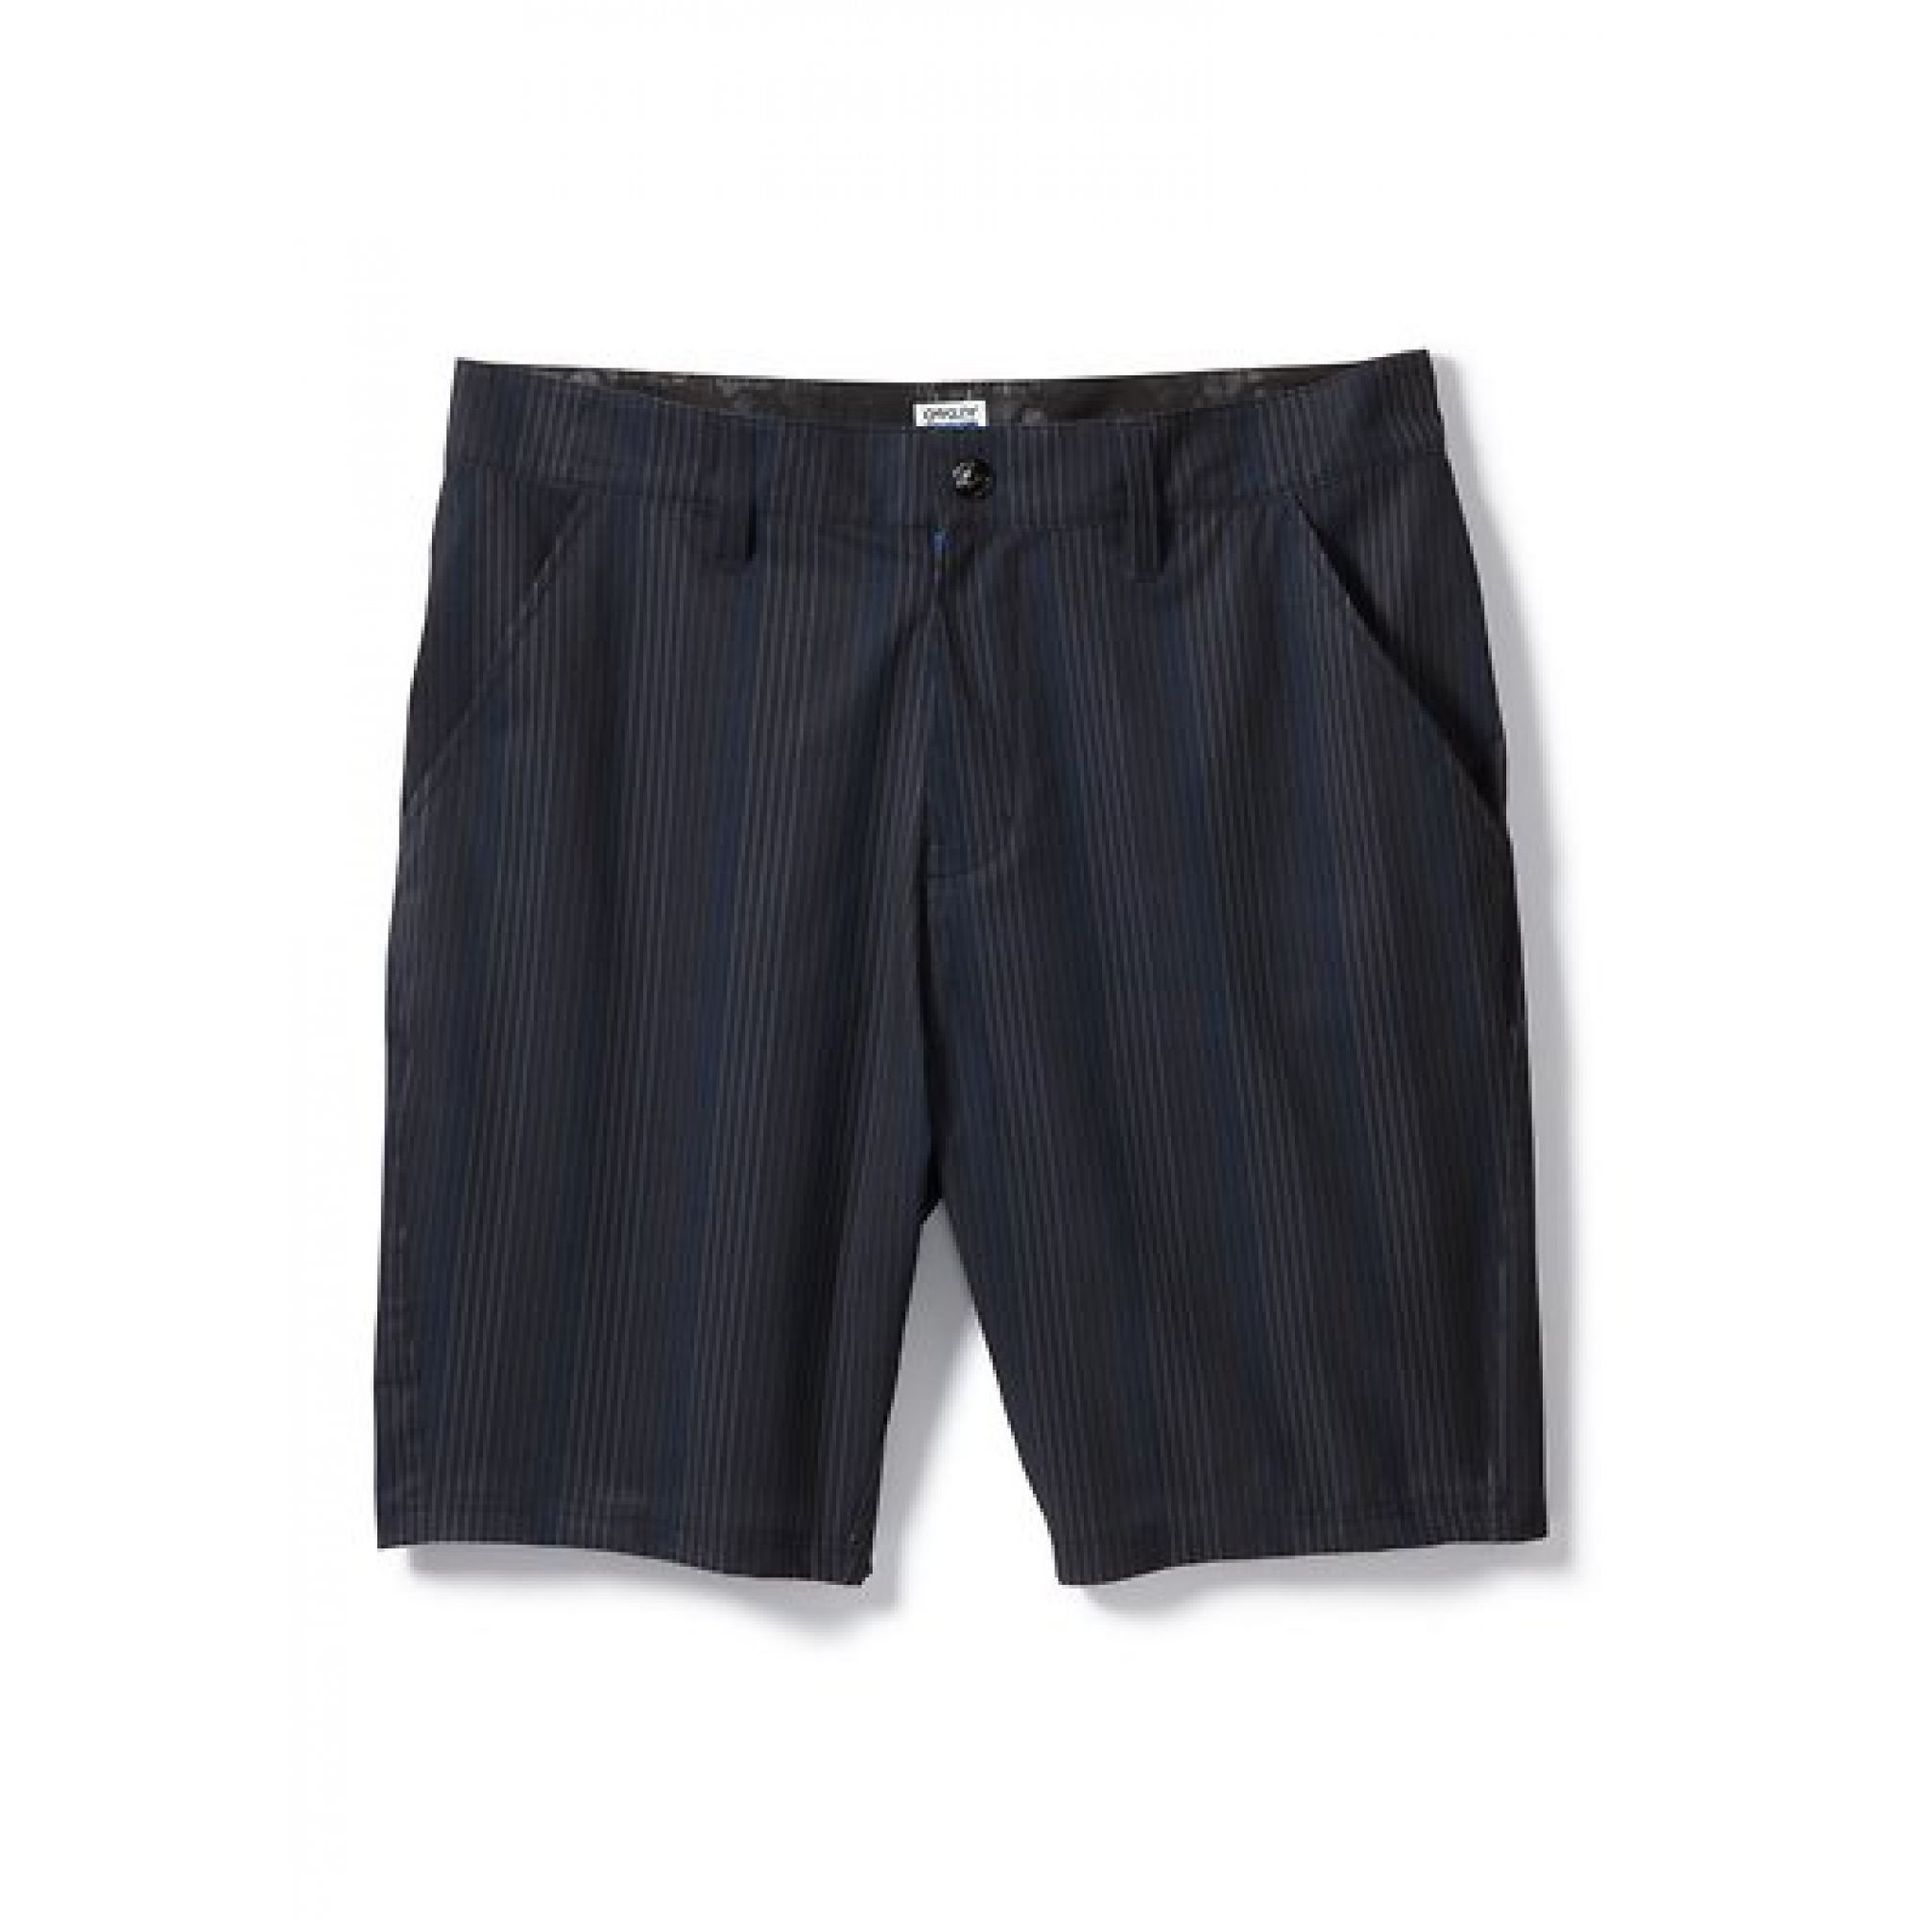 Spodenki Oakley  Ultralight Short